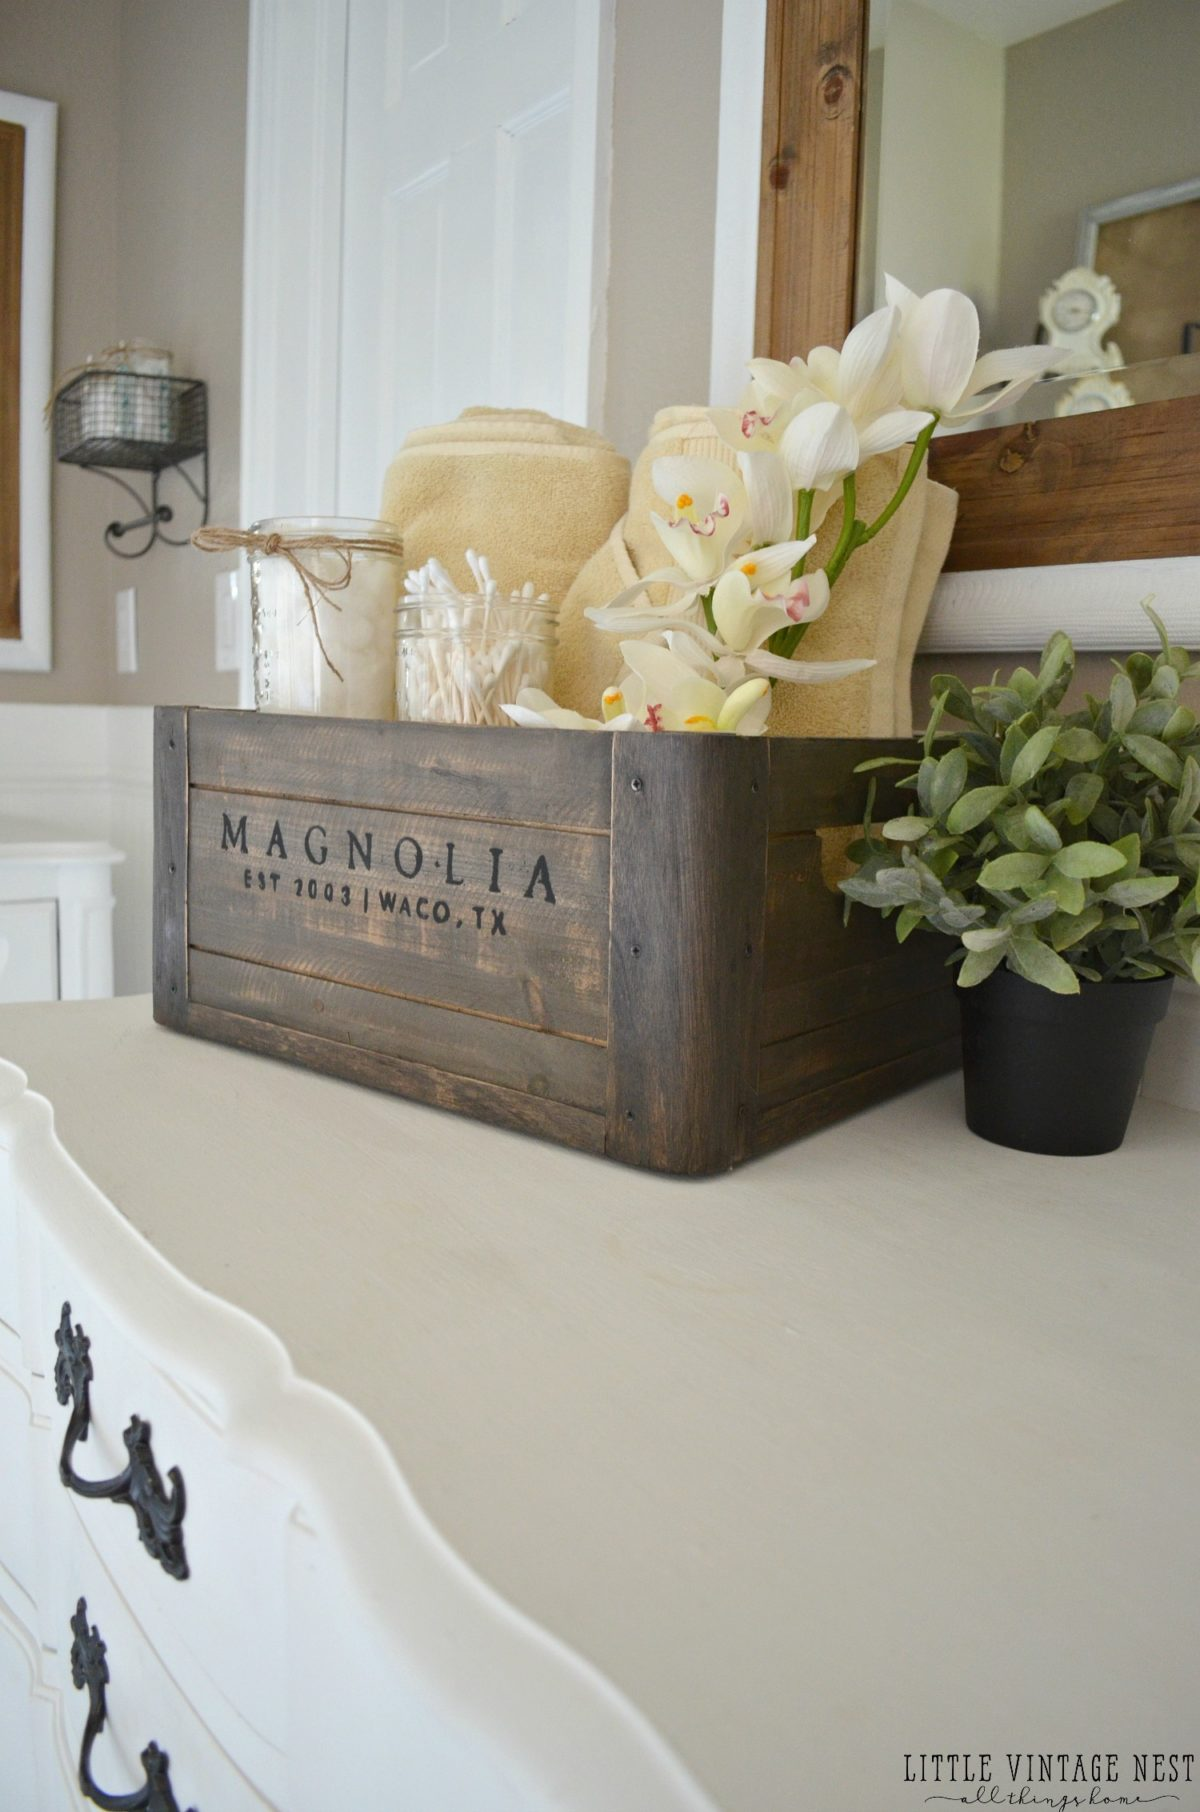 5 ways to style a wooden crate little vintage nest - How to decorate a bathroom counter ...